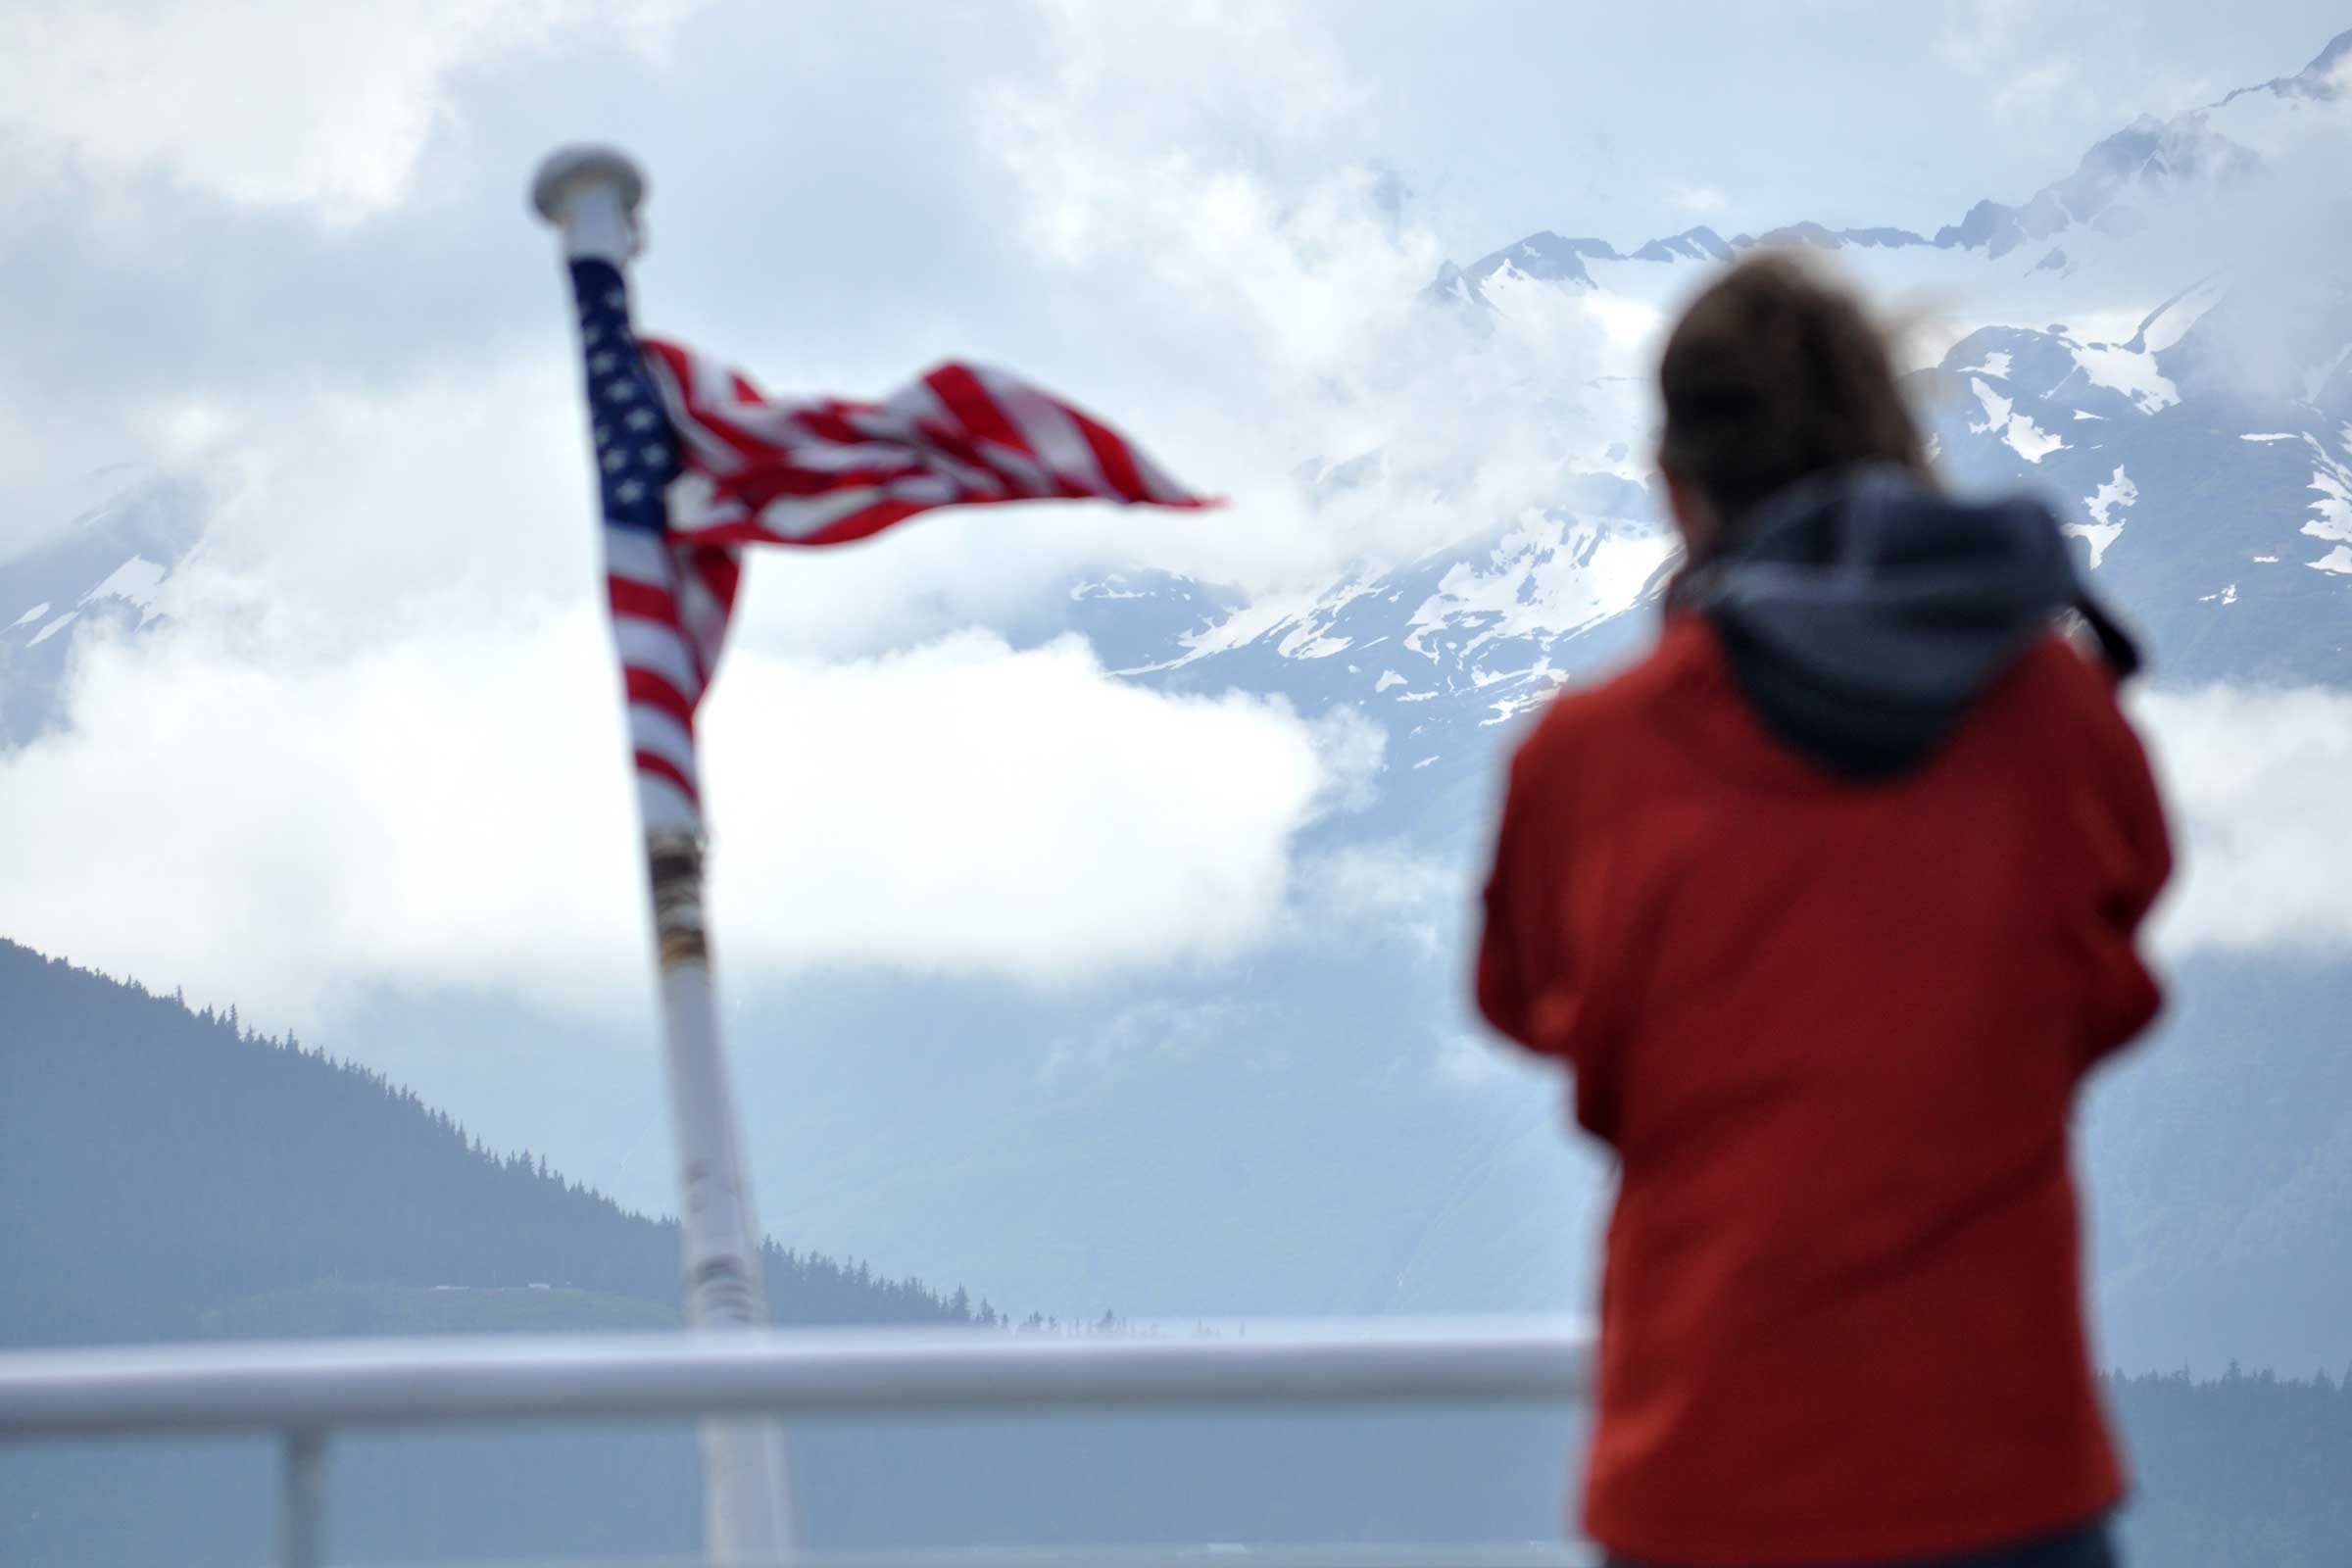 a figure braves the wind to gaze upon an american flag with mountains in the background